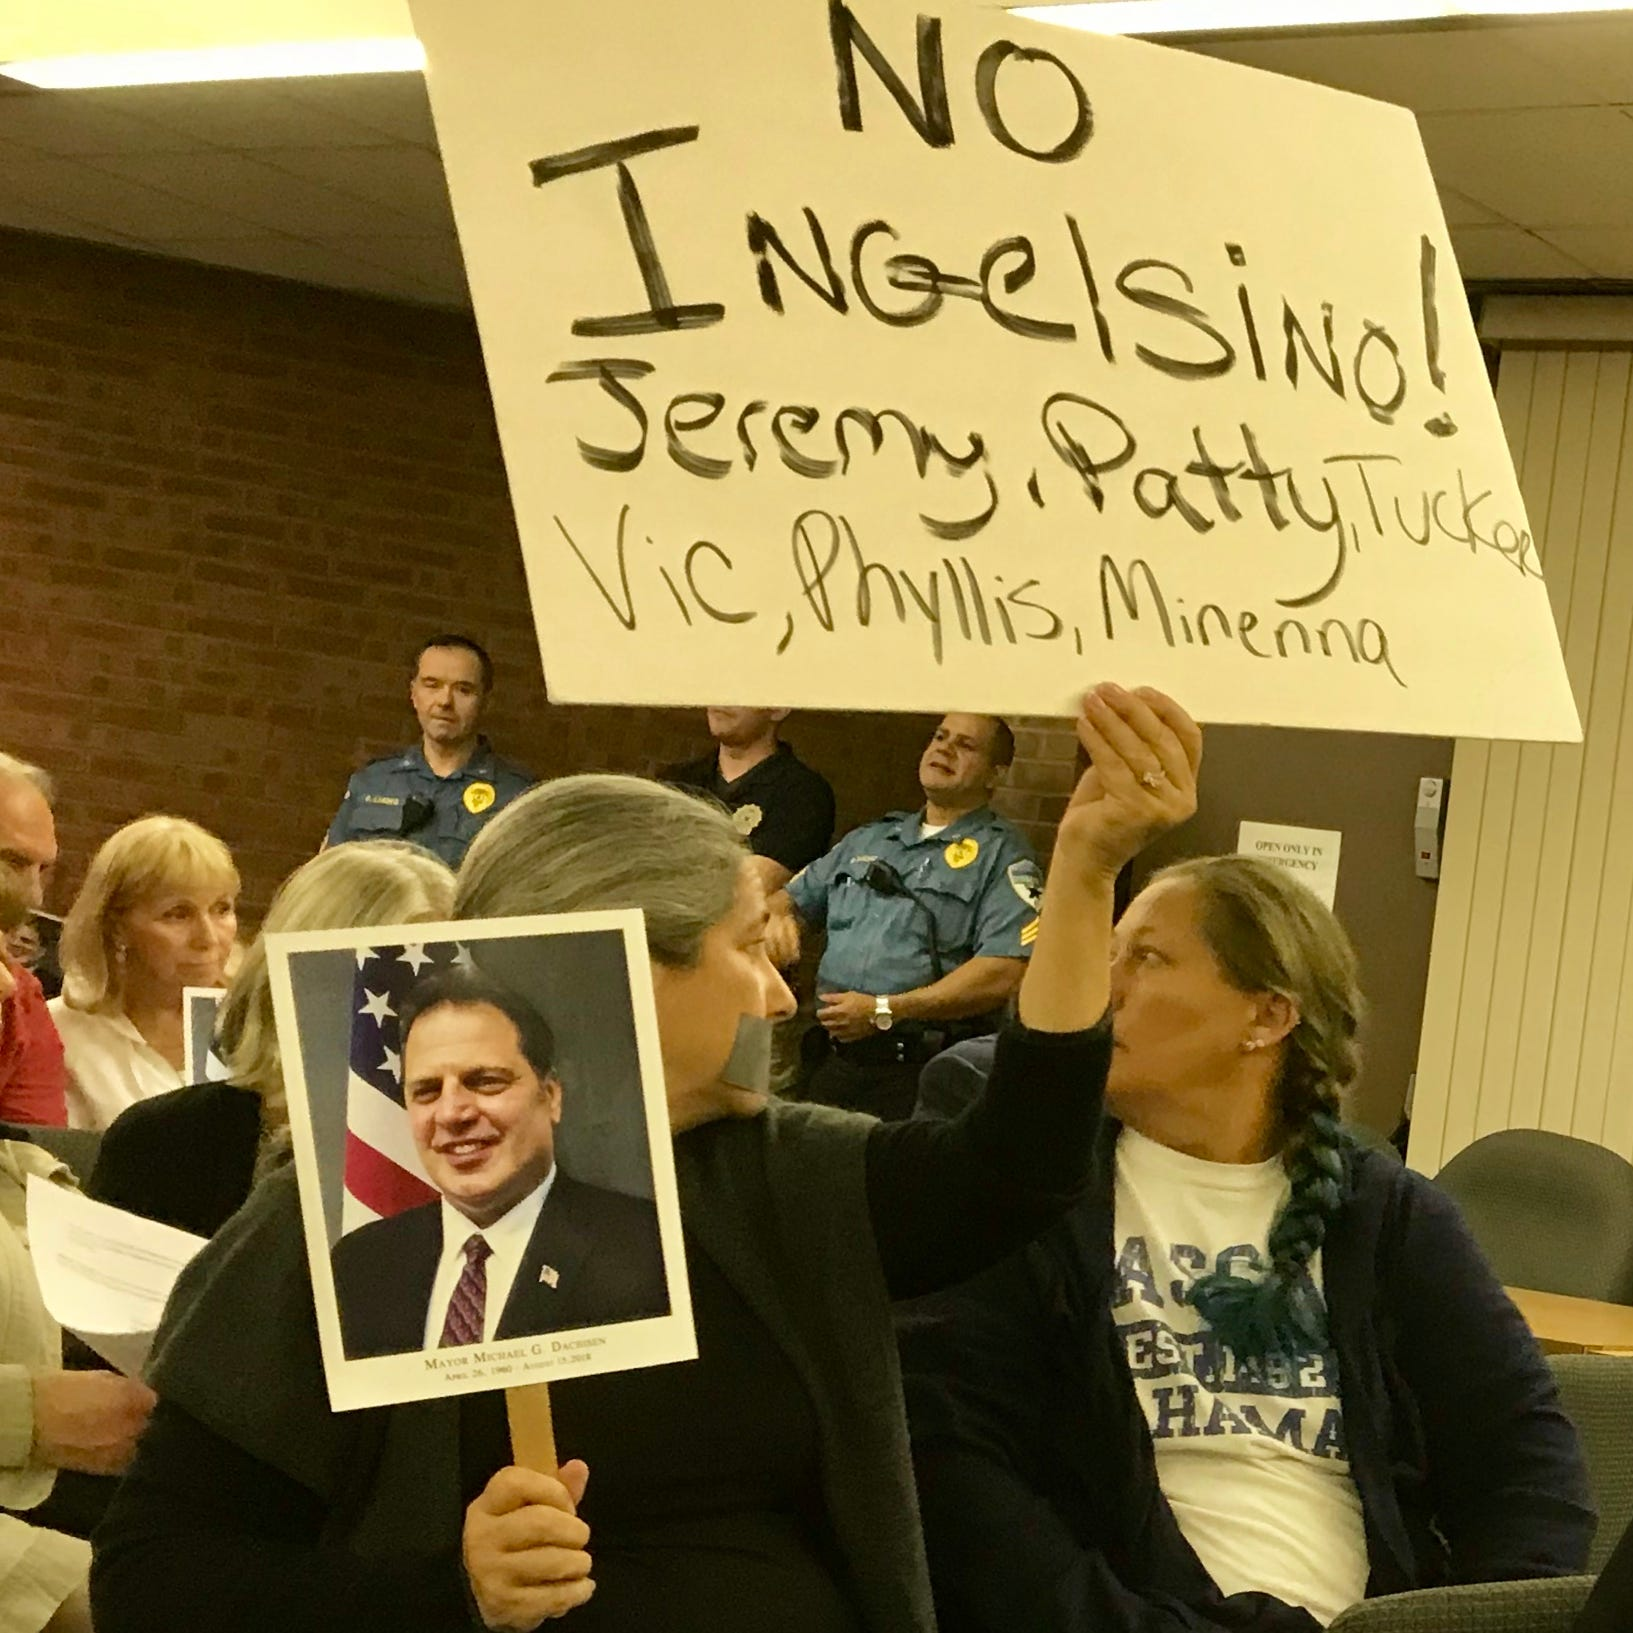 Lawsuit questions legality of Rockaway Twp. council meetings, actions